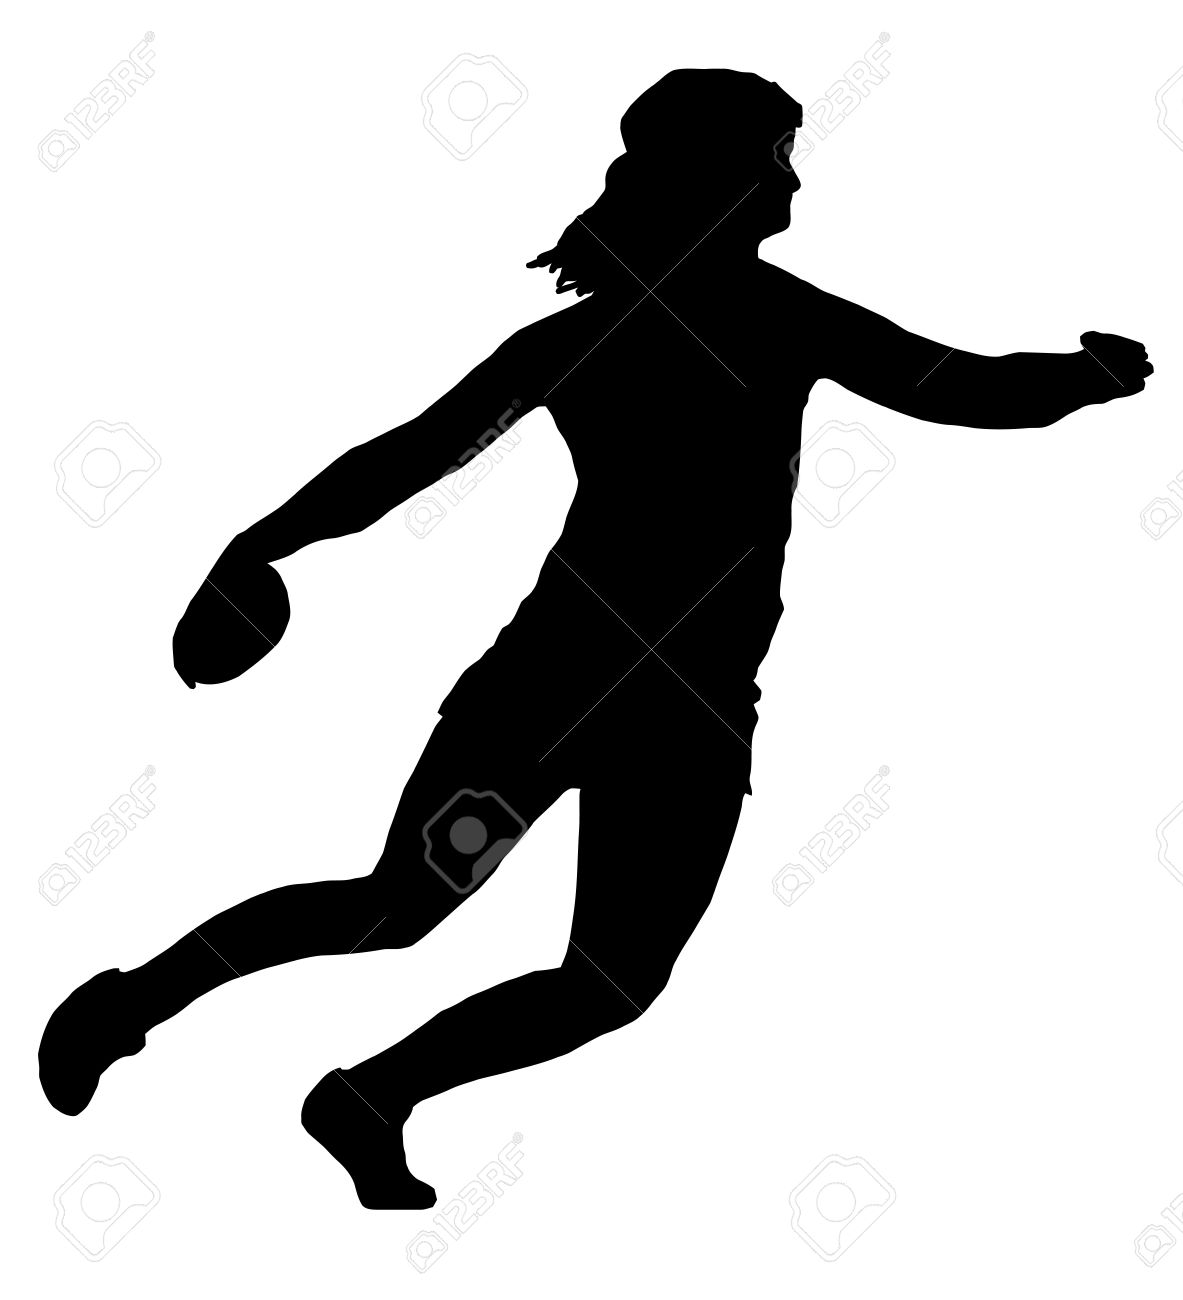 Isolated Image of a Female Discus Thrower Stock Vector - 10928792